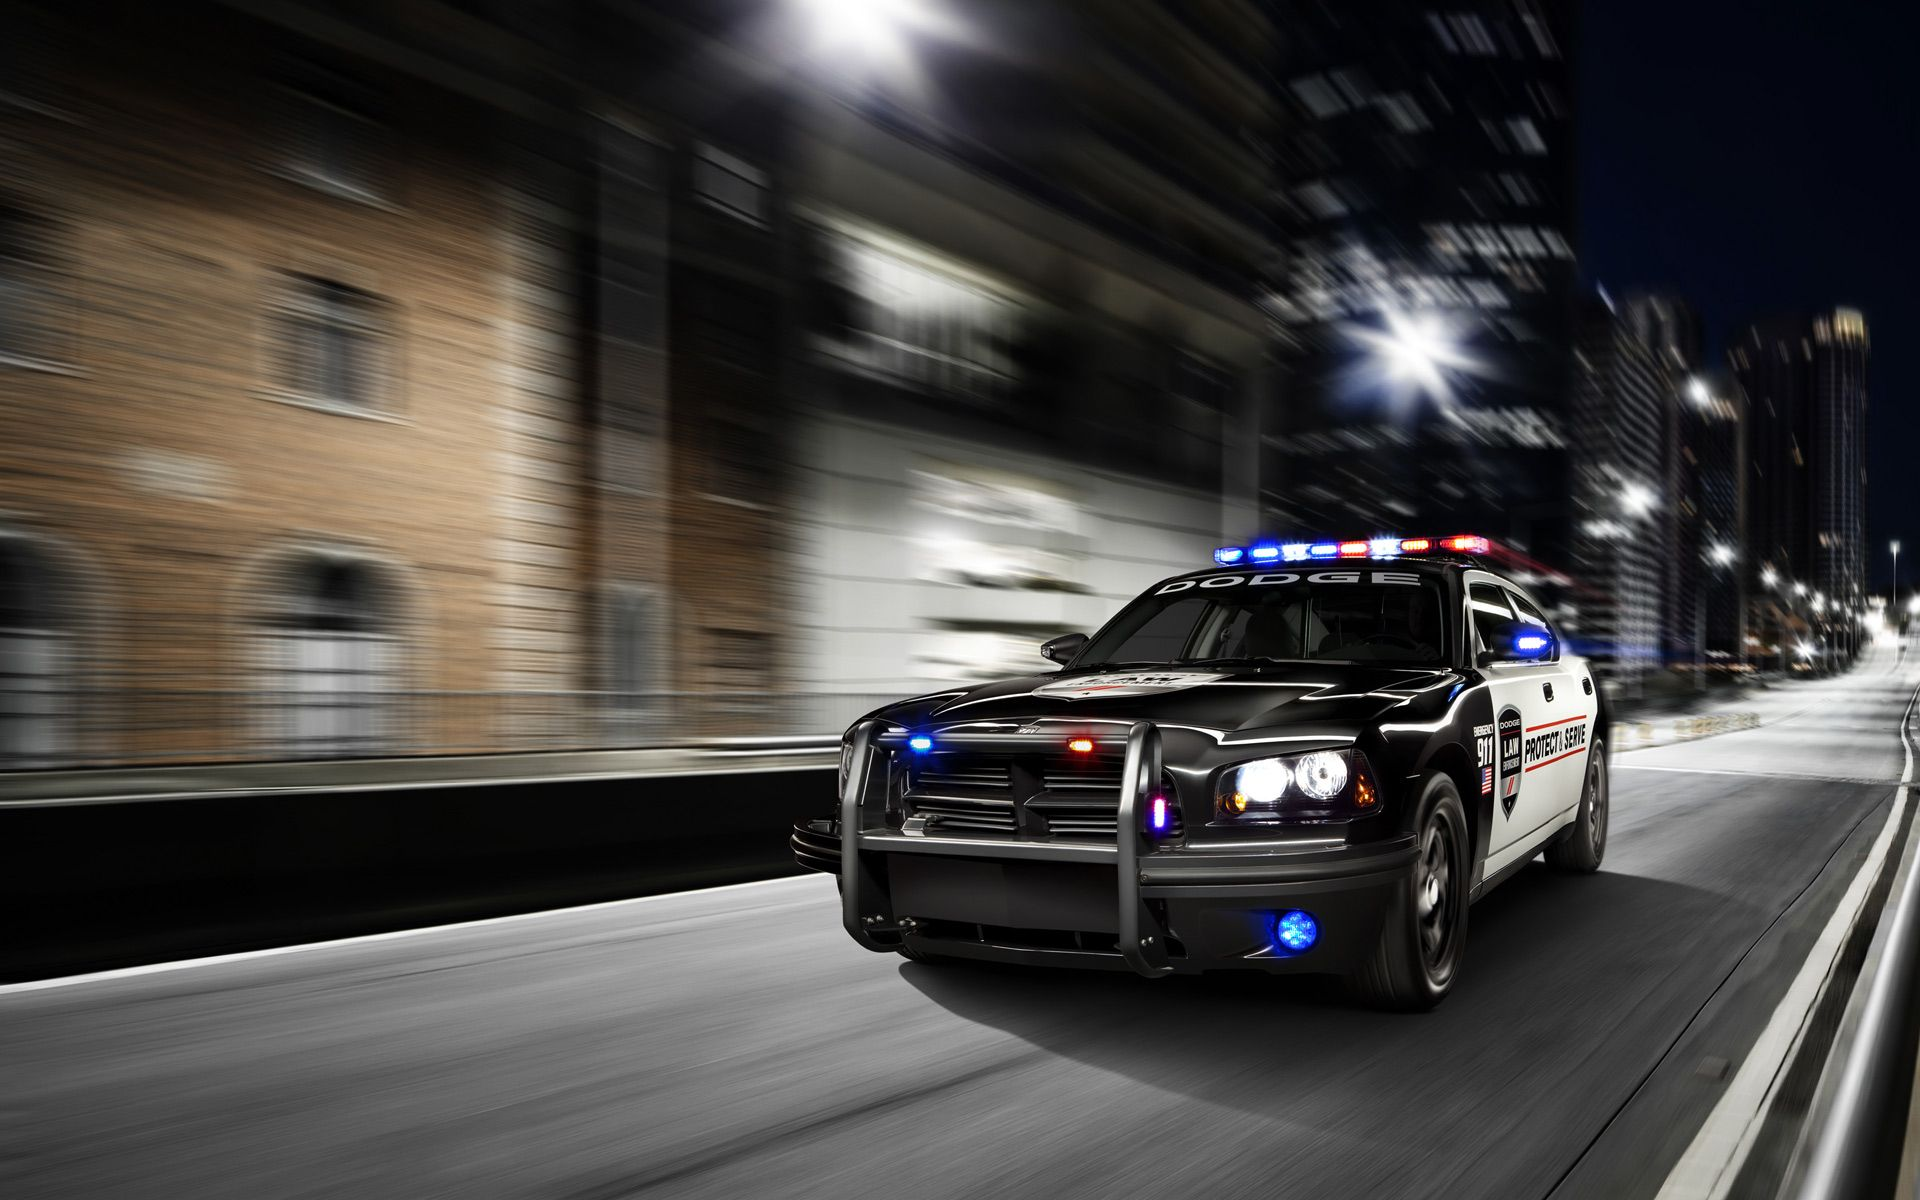 dodge charger police car wallpaper | chicago nightlife | pinterest